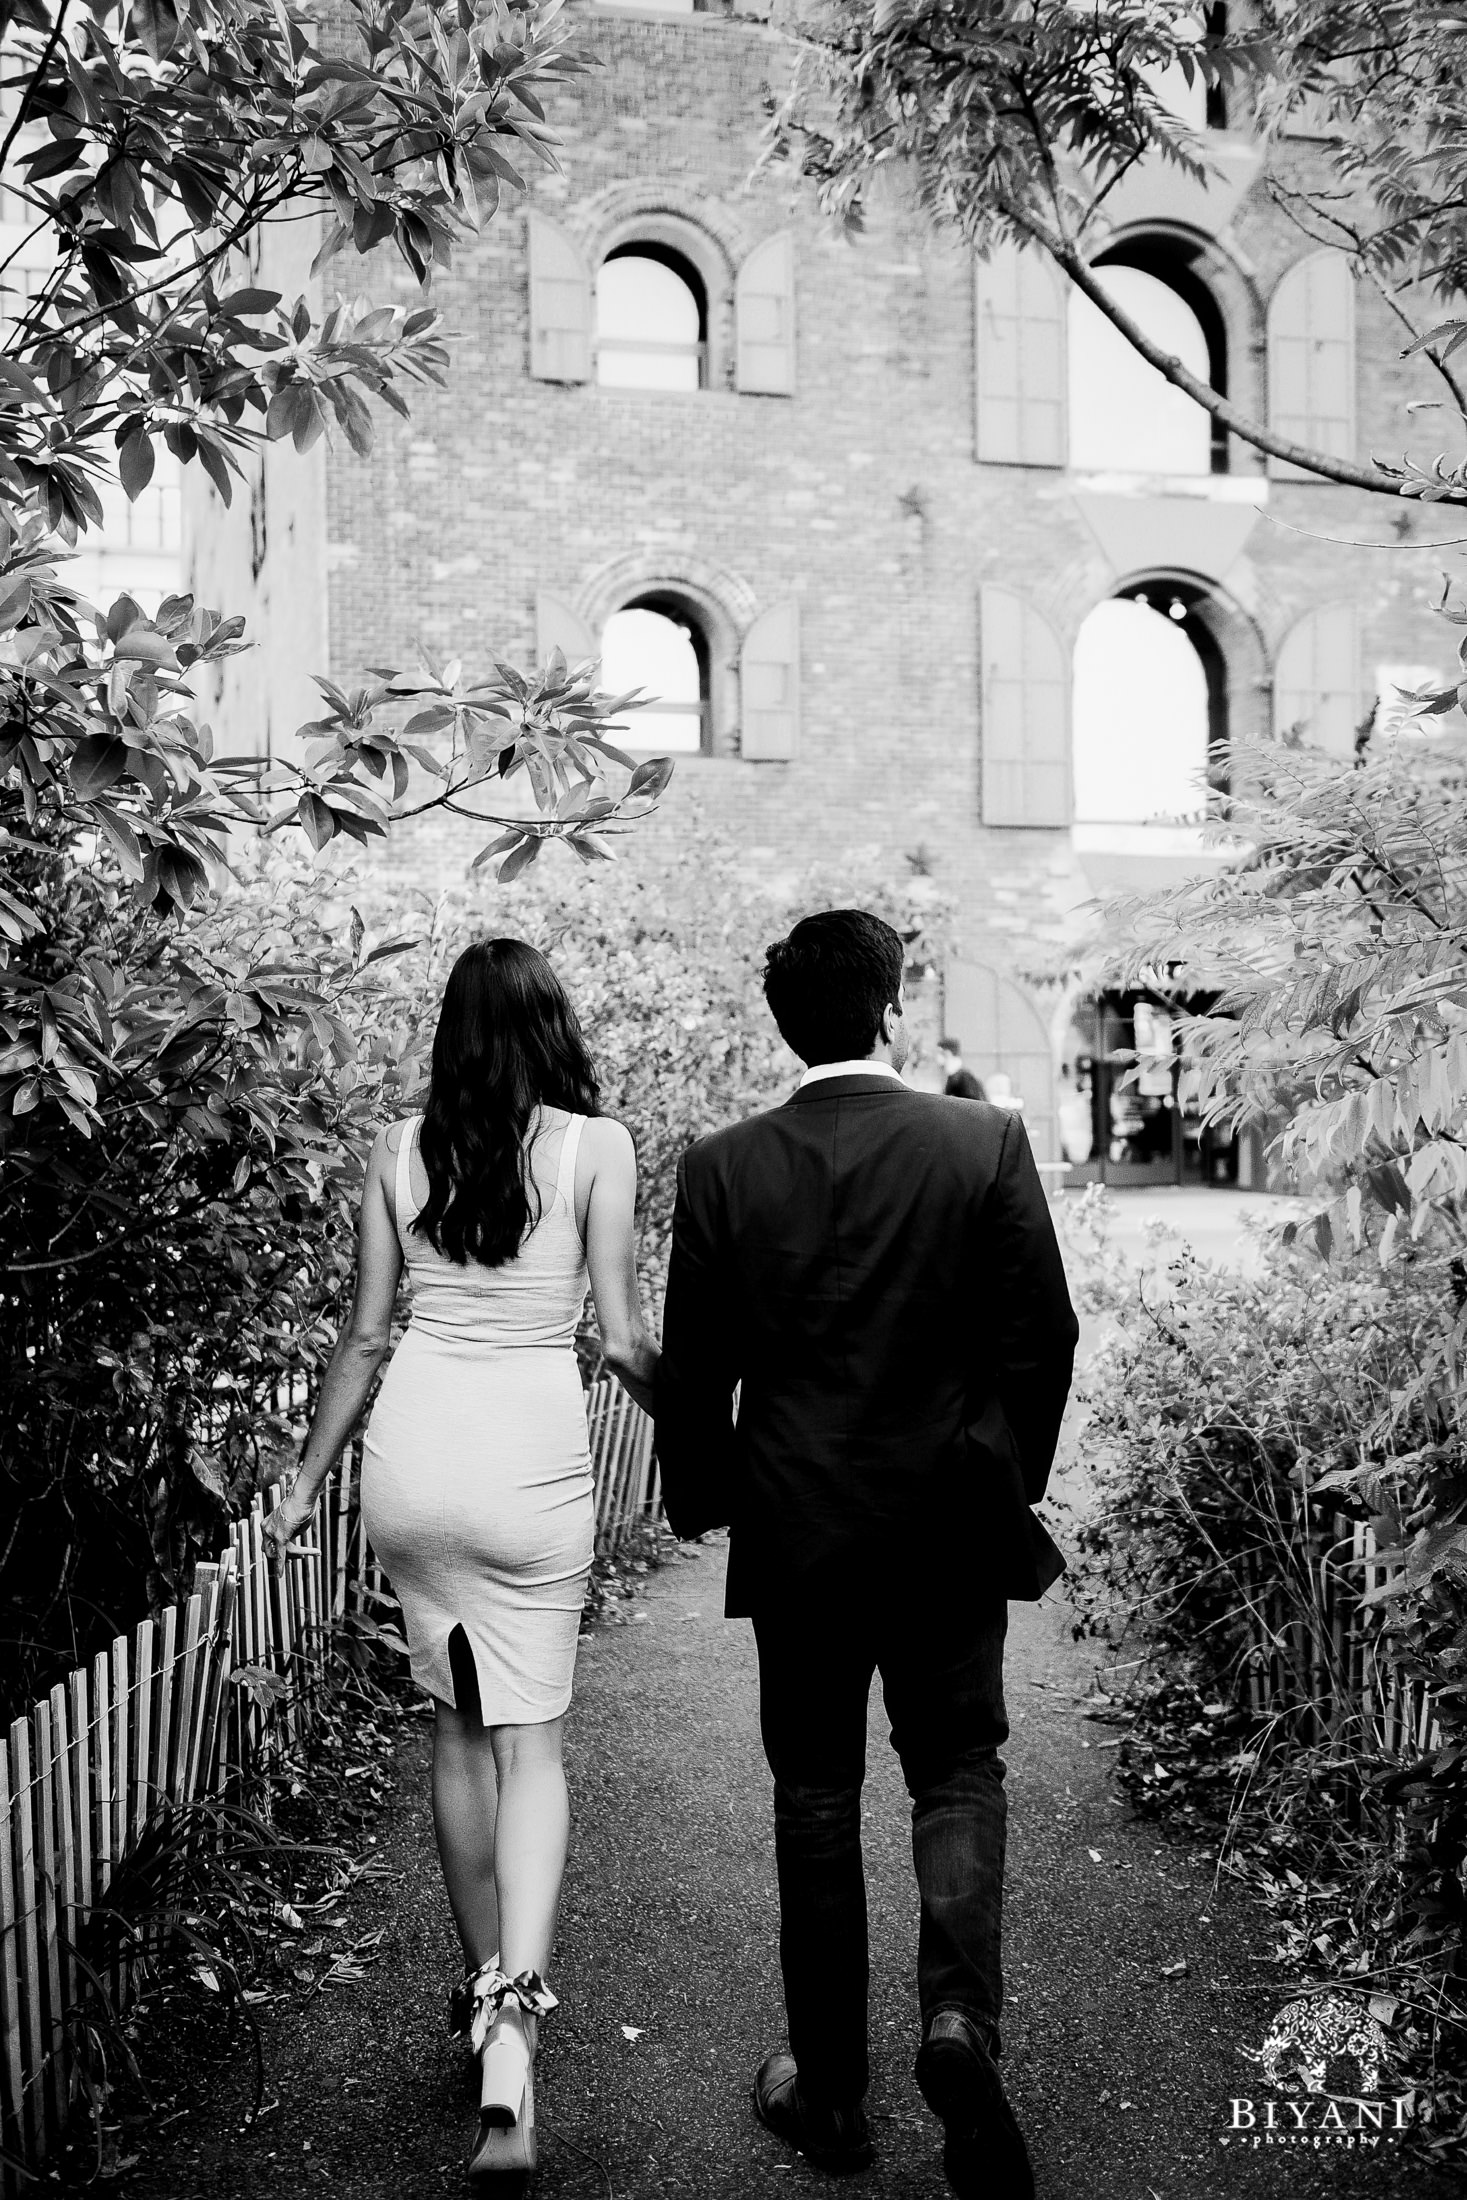 couple walking towards building with arched windows while holding hands